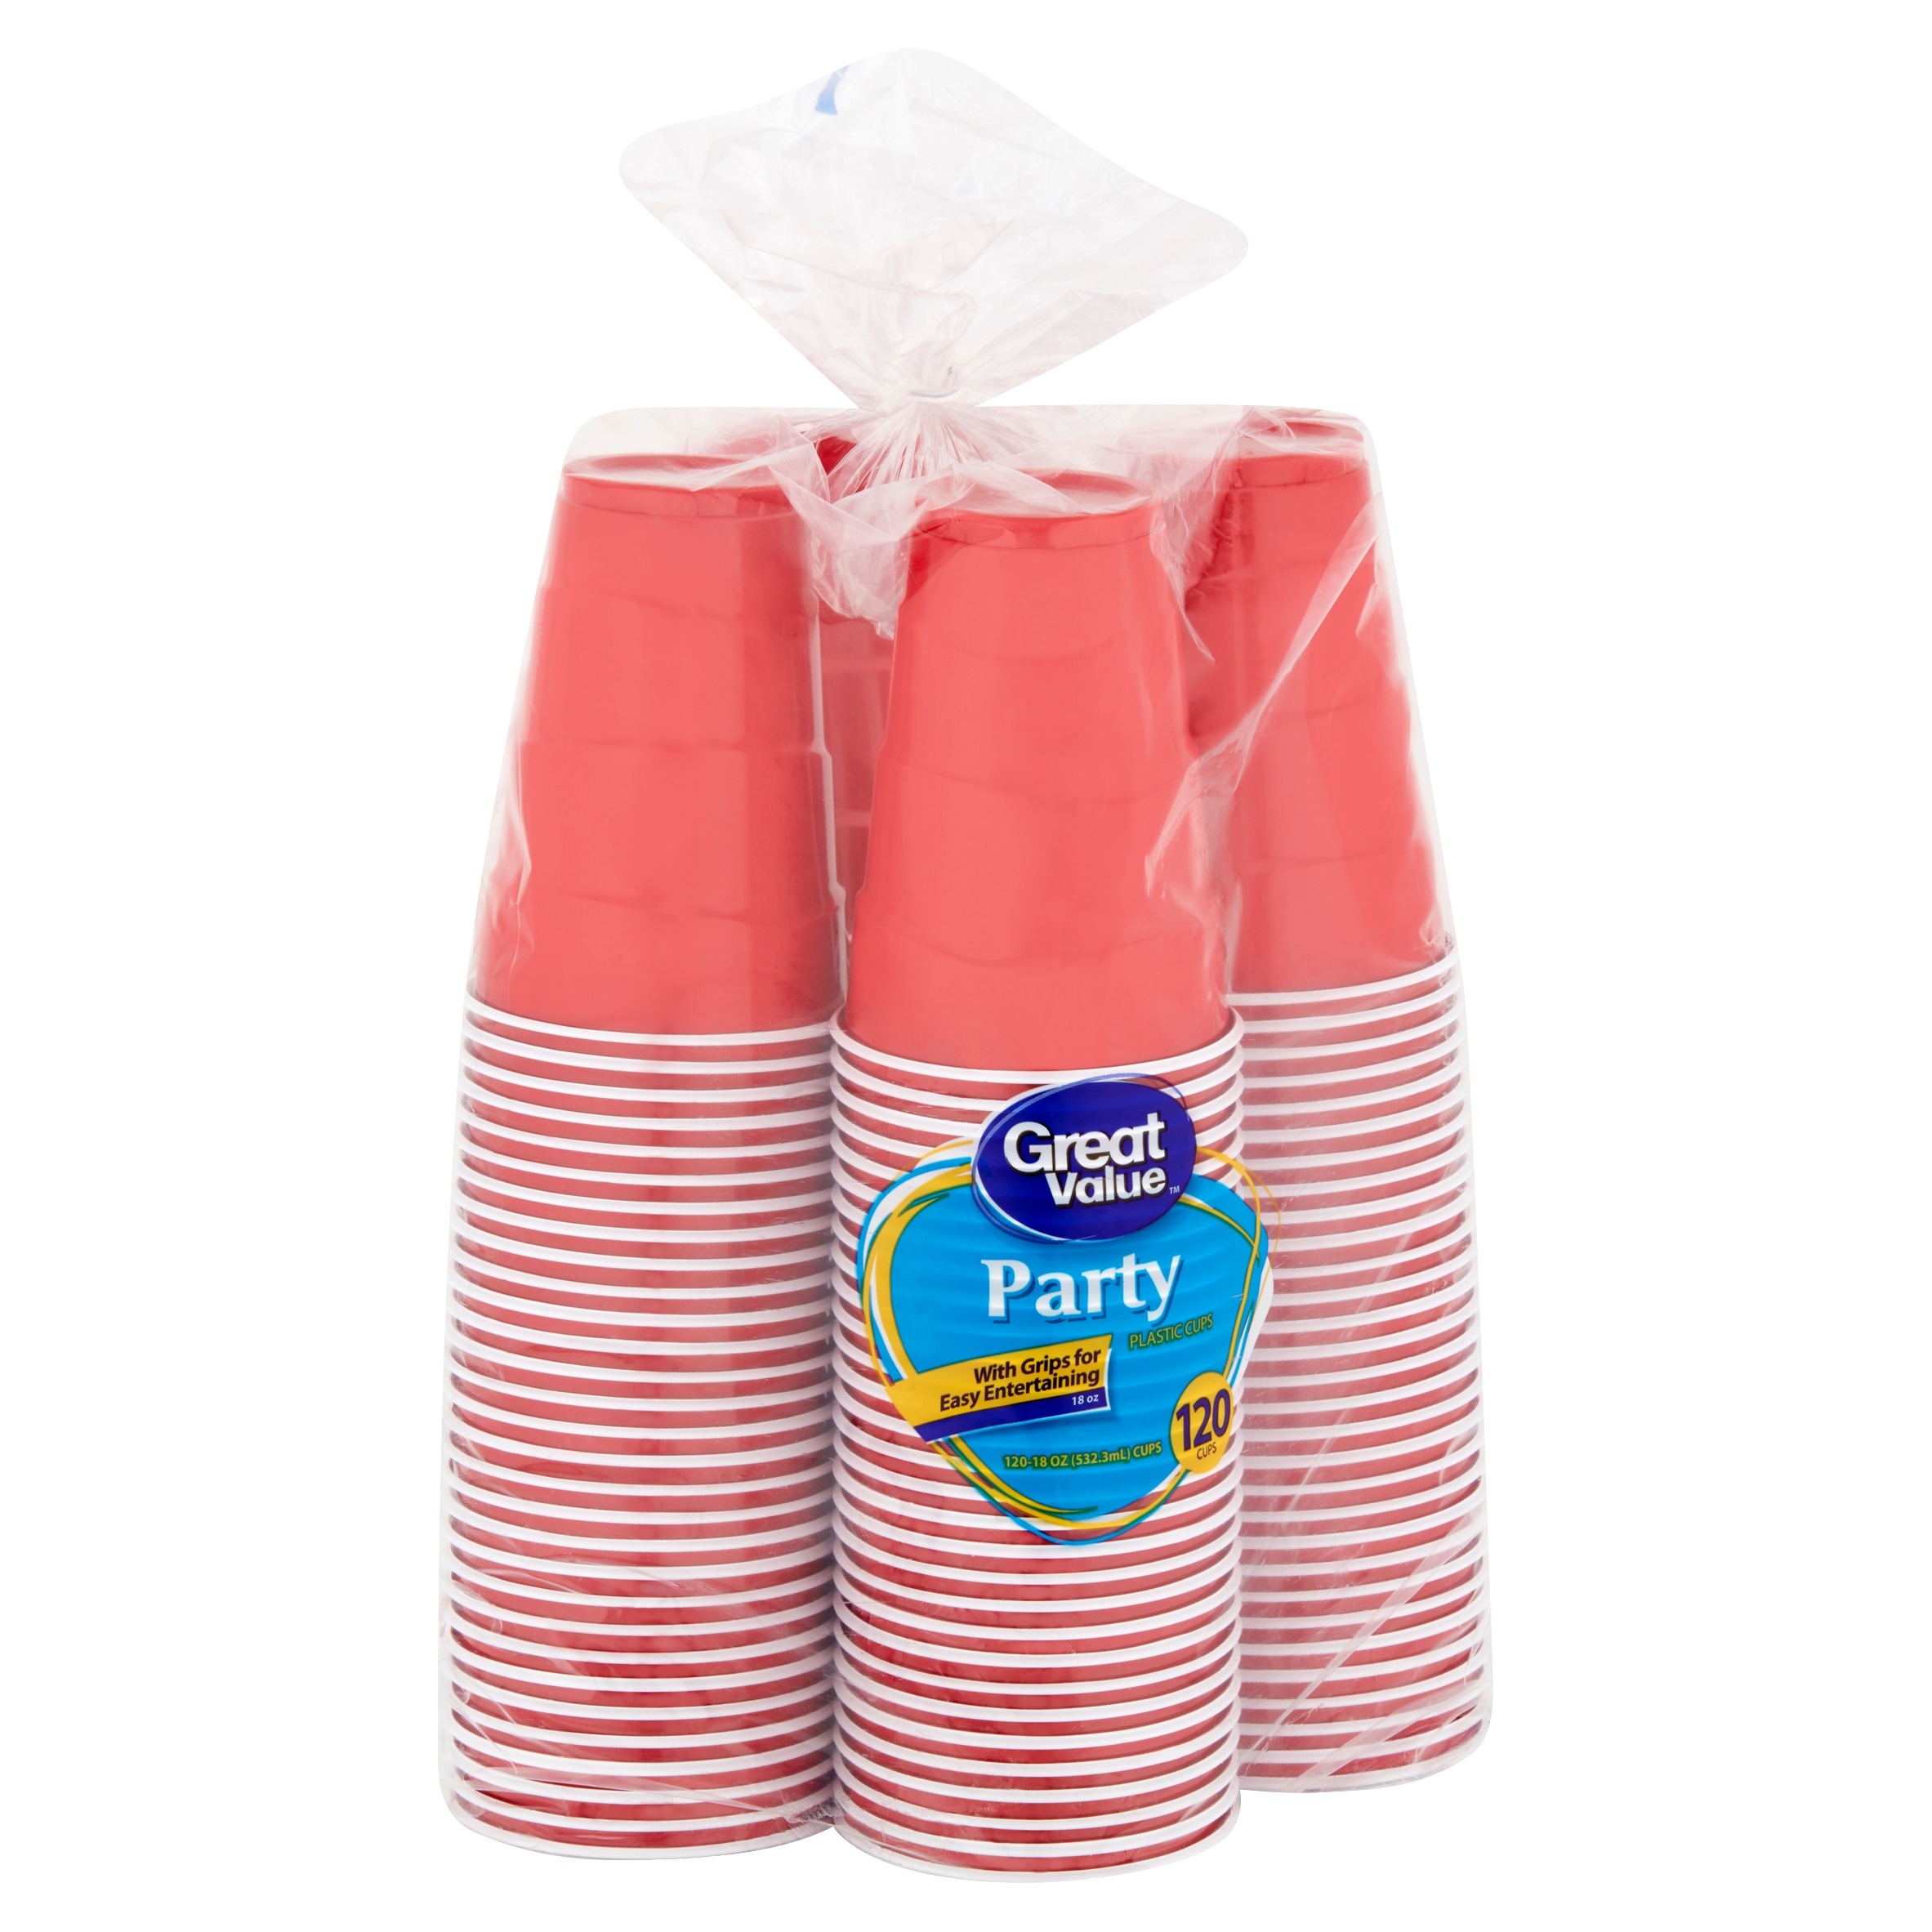 (2 pack) Great Value 18 oz Party Plastic Cups, 240 count